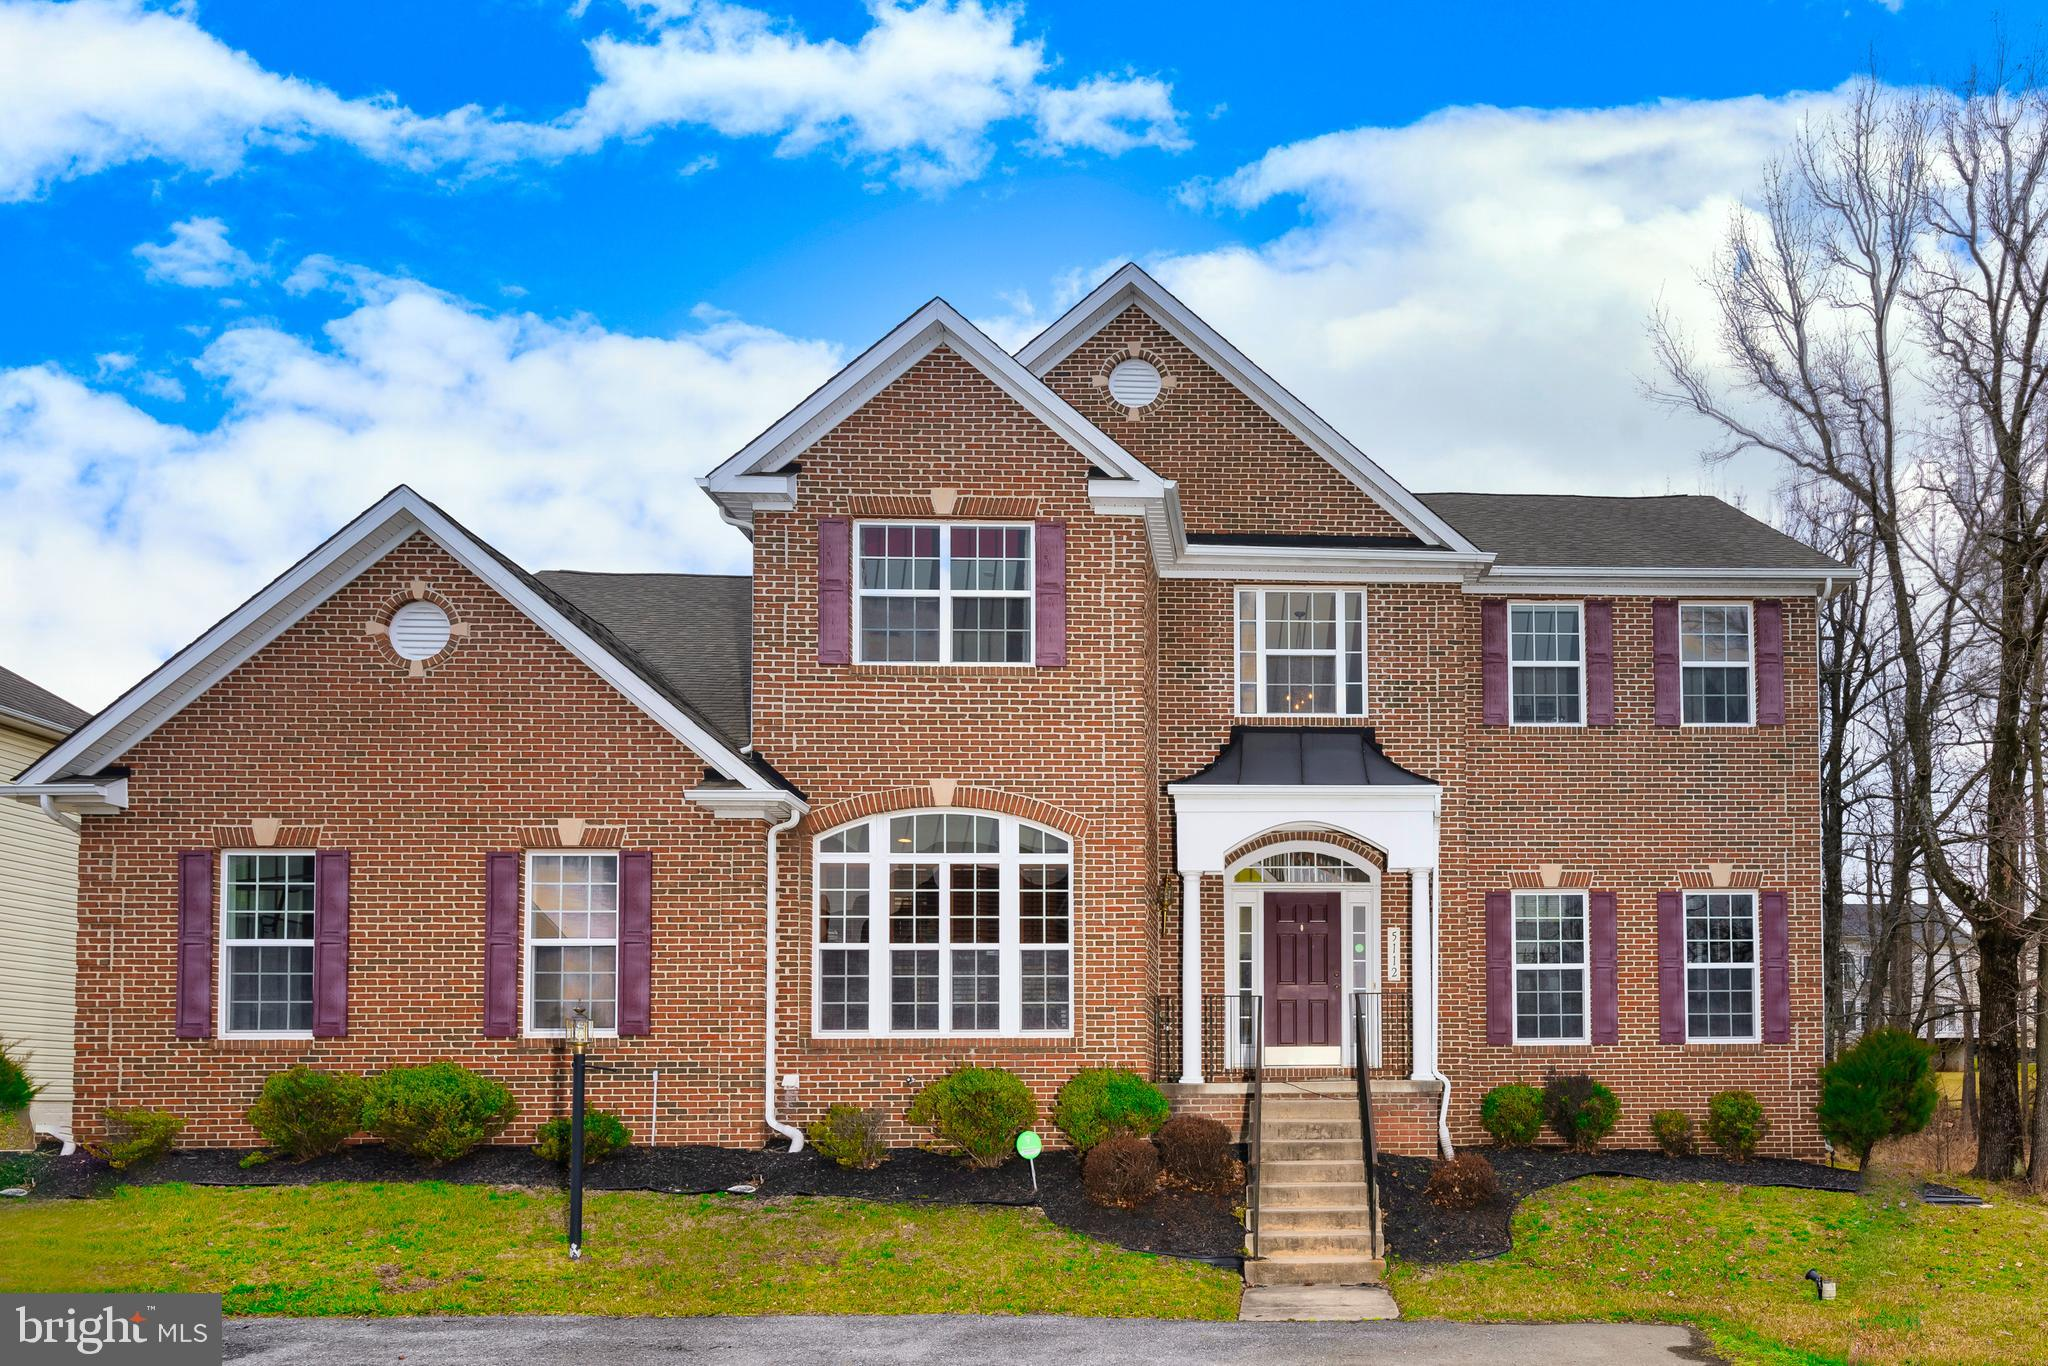 5112 MORNING DOVE WAY, PERRY HALL, MD 21128